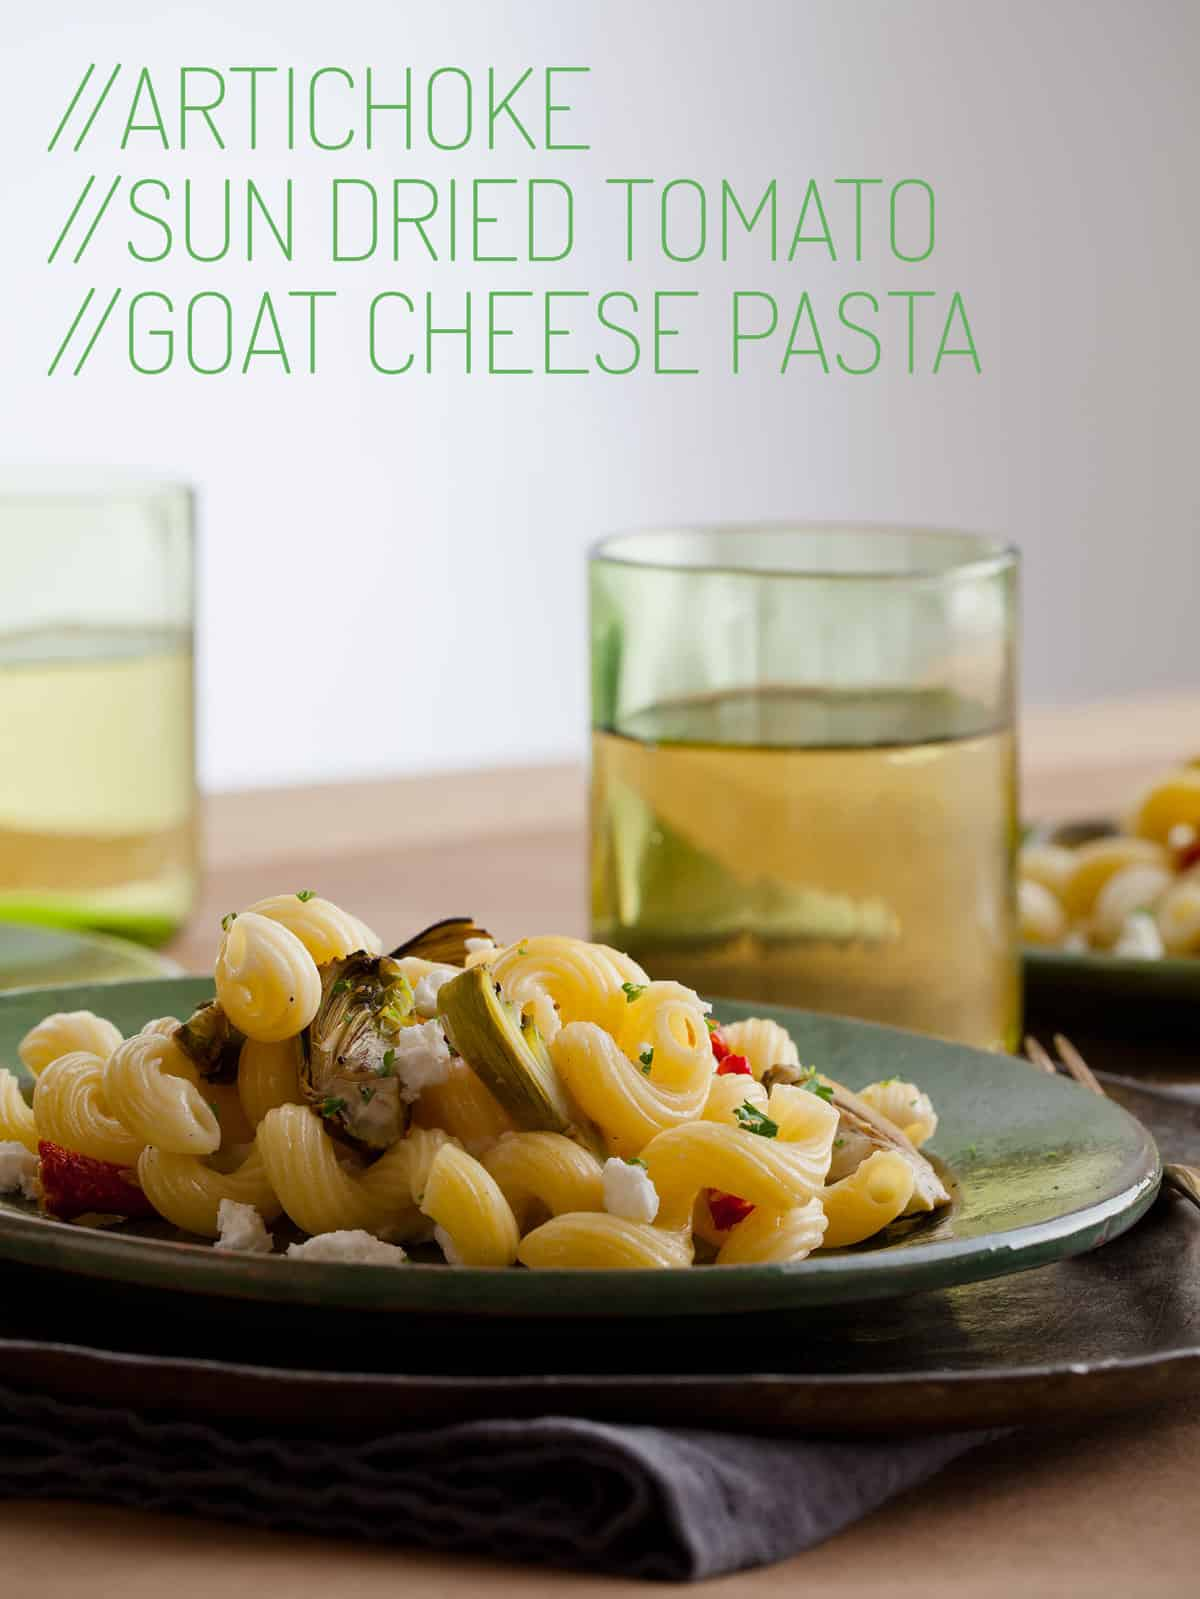 A Recipe For Artichoke And Sun Dried Tomato Goat Cheese Pasta Dish